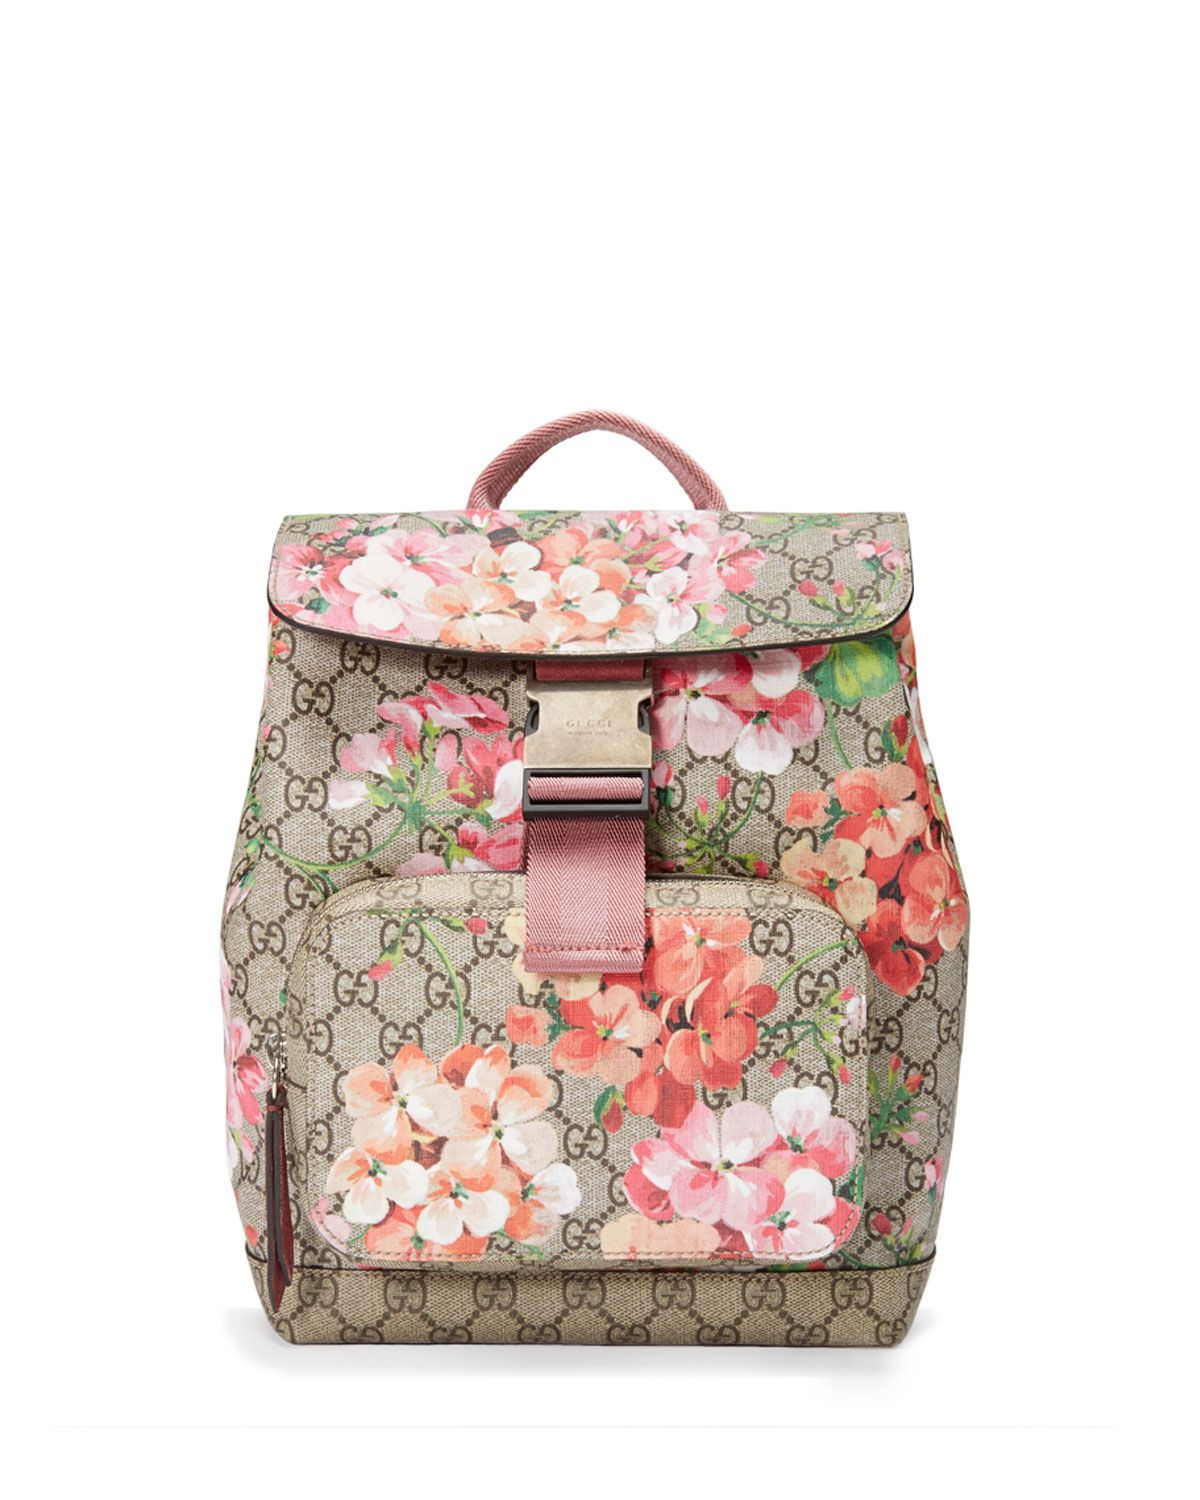 dab9c851901 GG Blooms Small Backpack Multi Rose